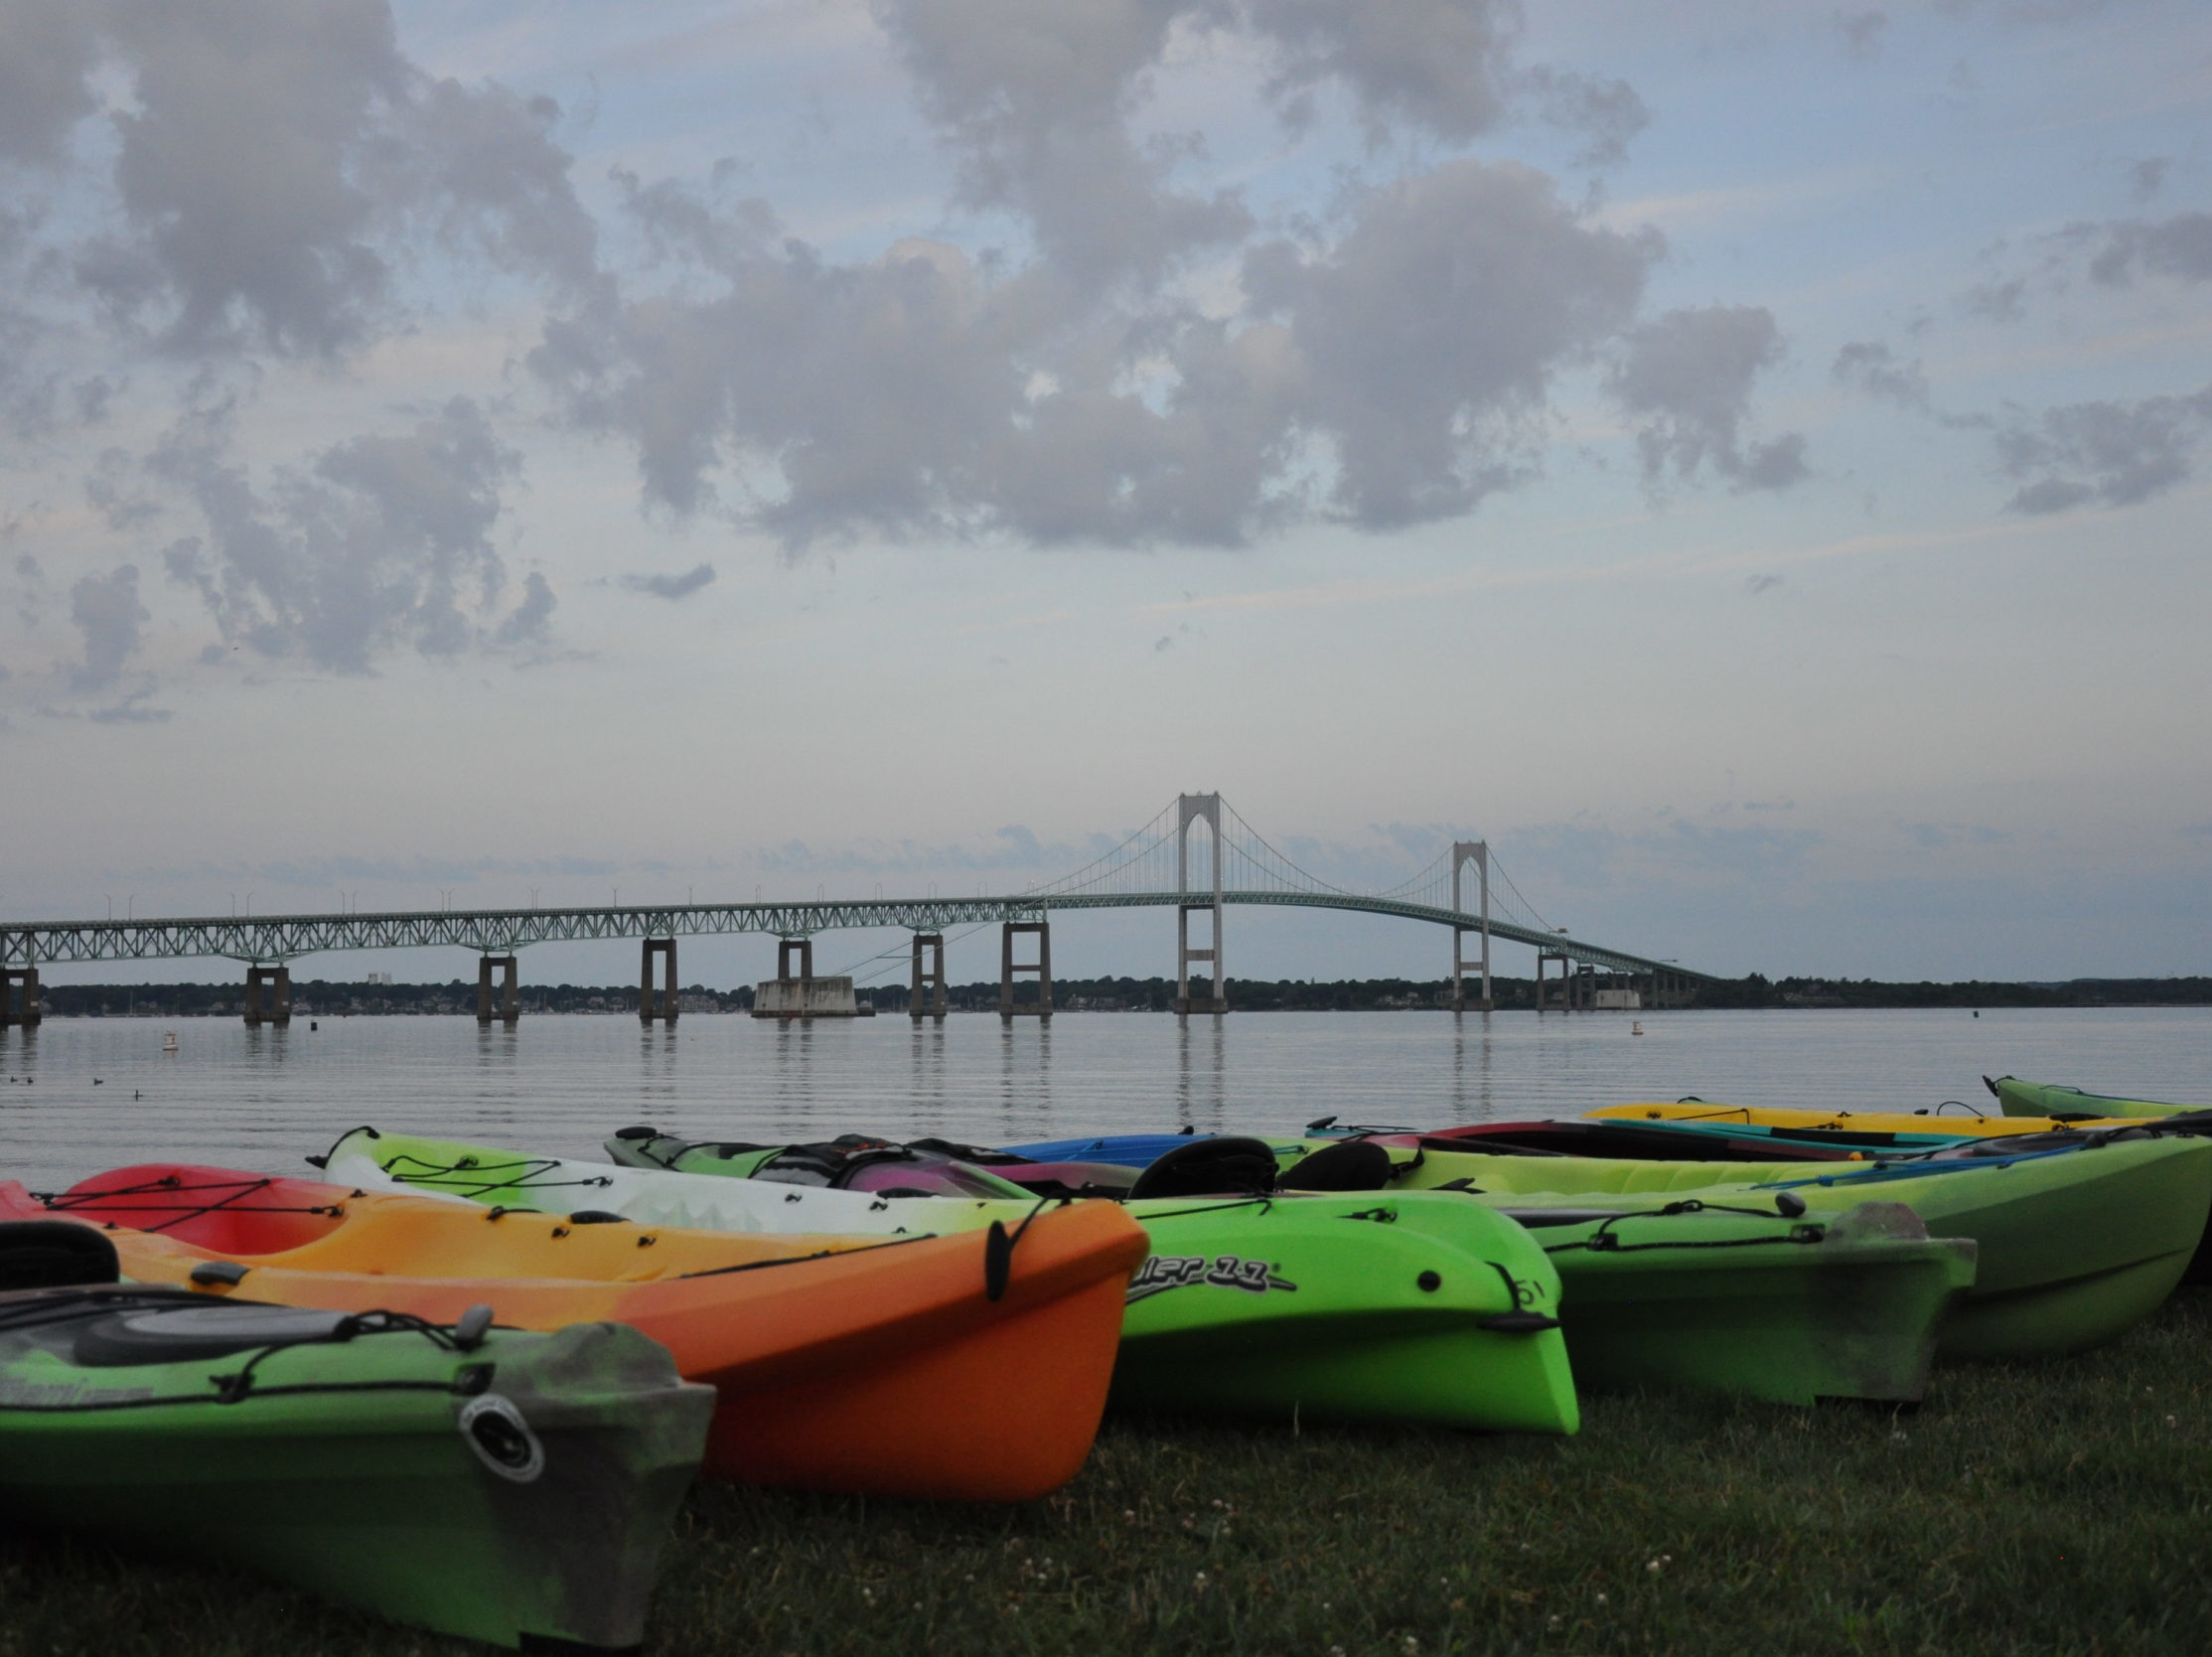 Swim 2019 kayaks at the Newport starting line